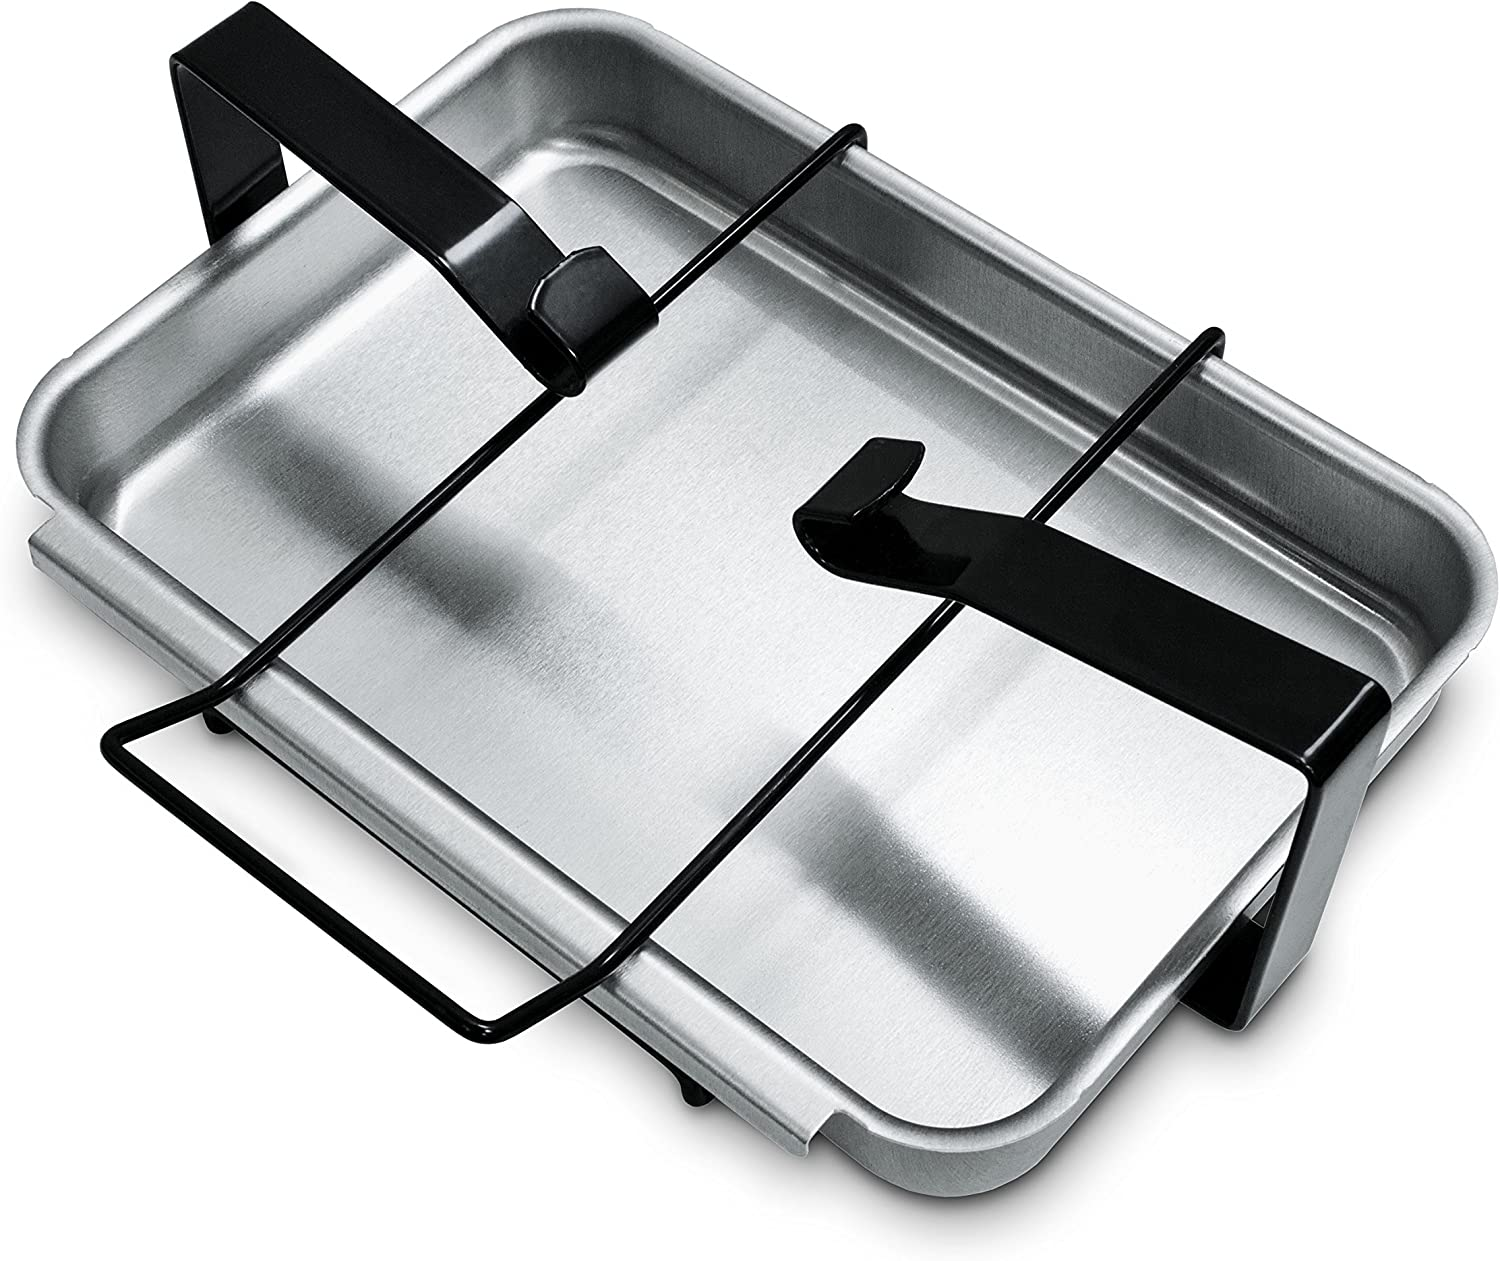 Weber 7515 Catch Pan and Holder : Grill Parts : Garden & Outdoor